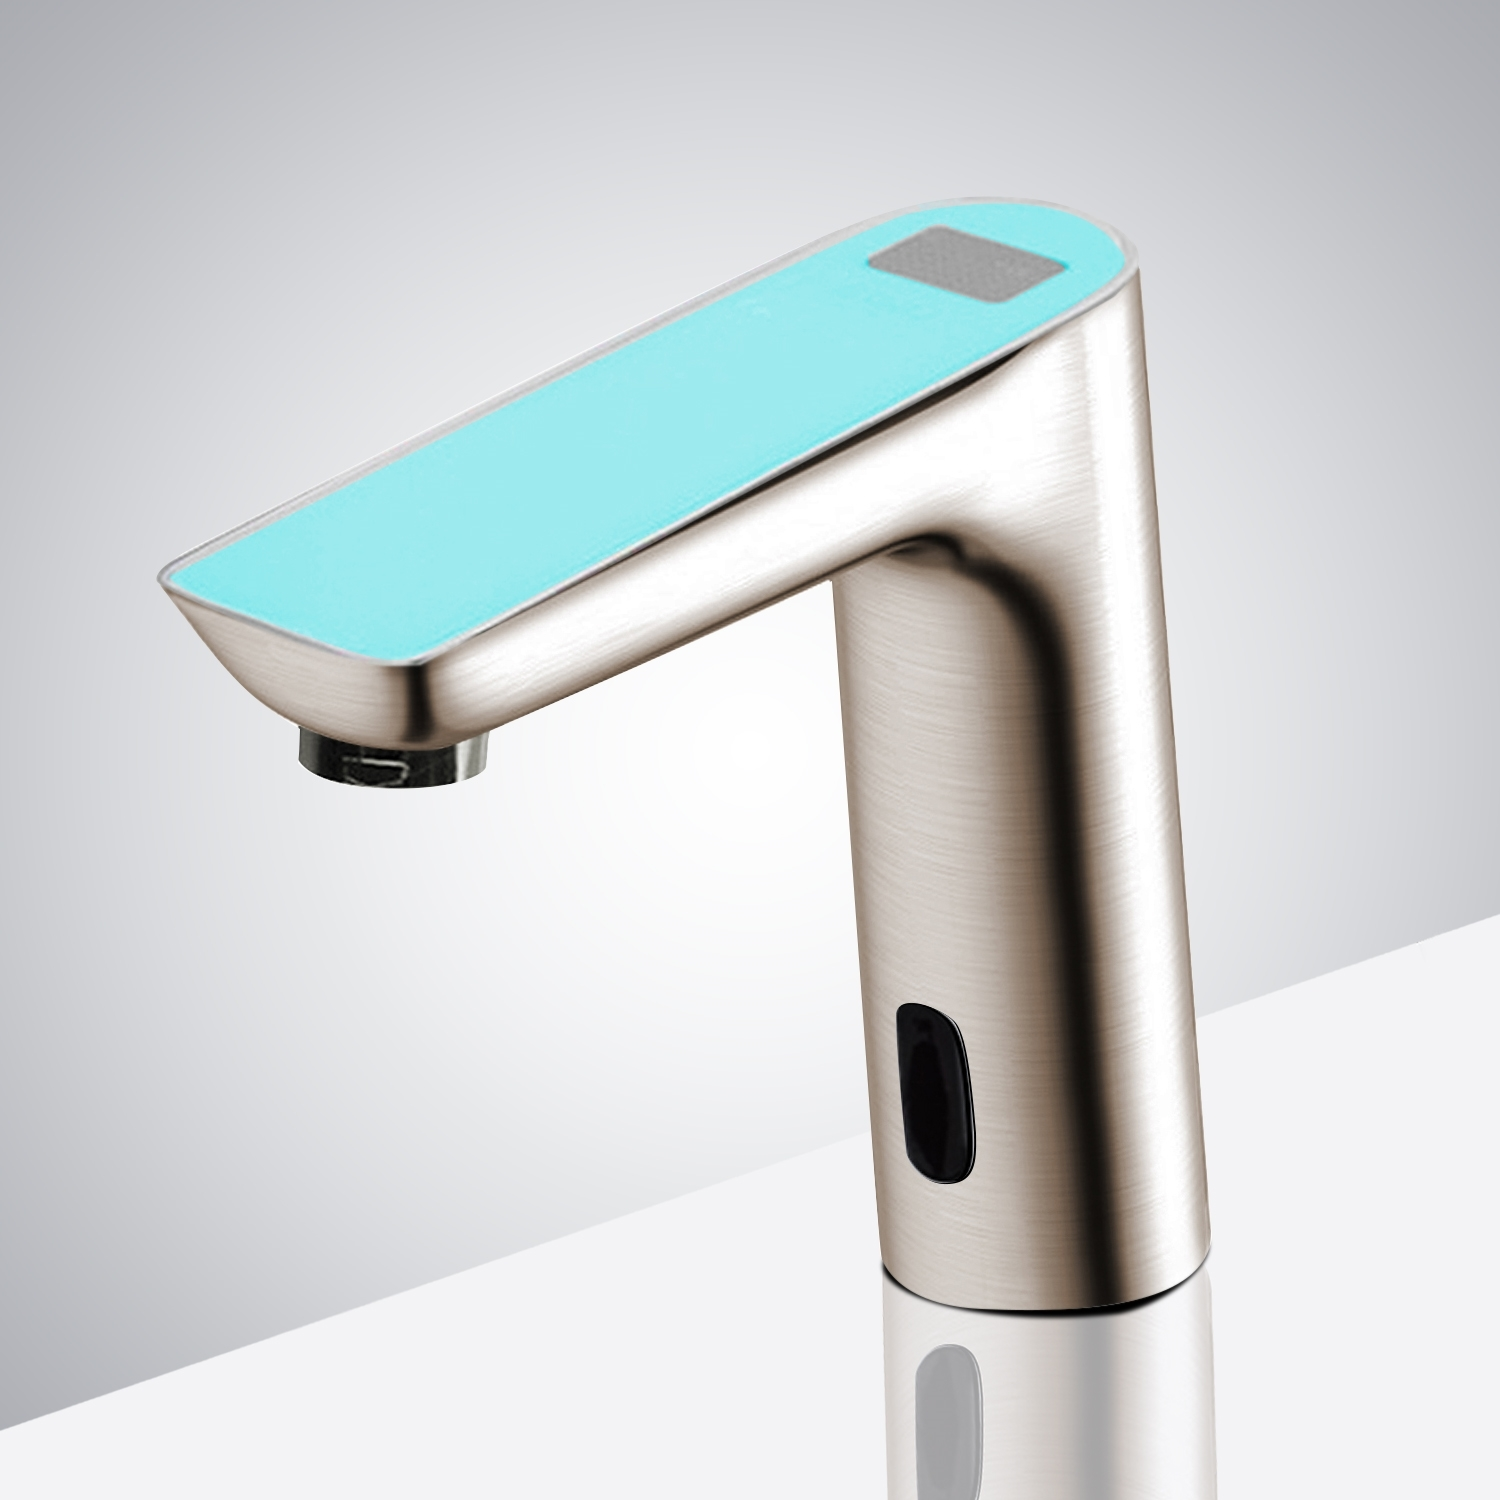 Buy Digital Display Bathroom Sensor Faucet Automatic Hands Free ...